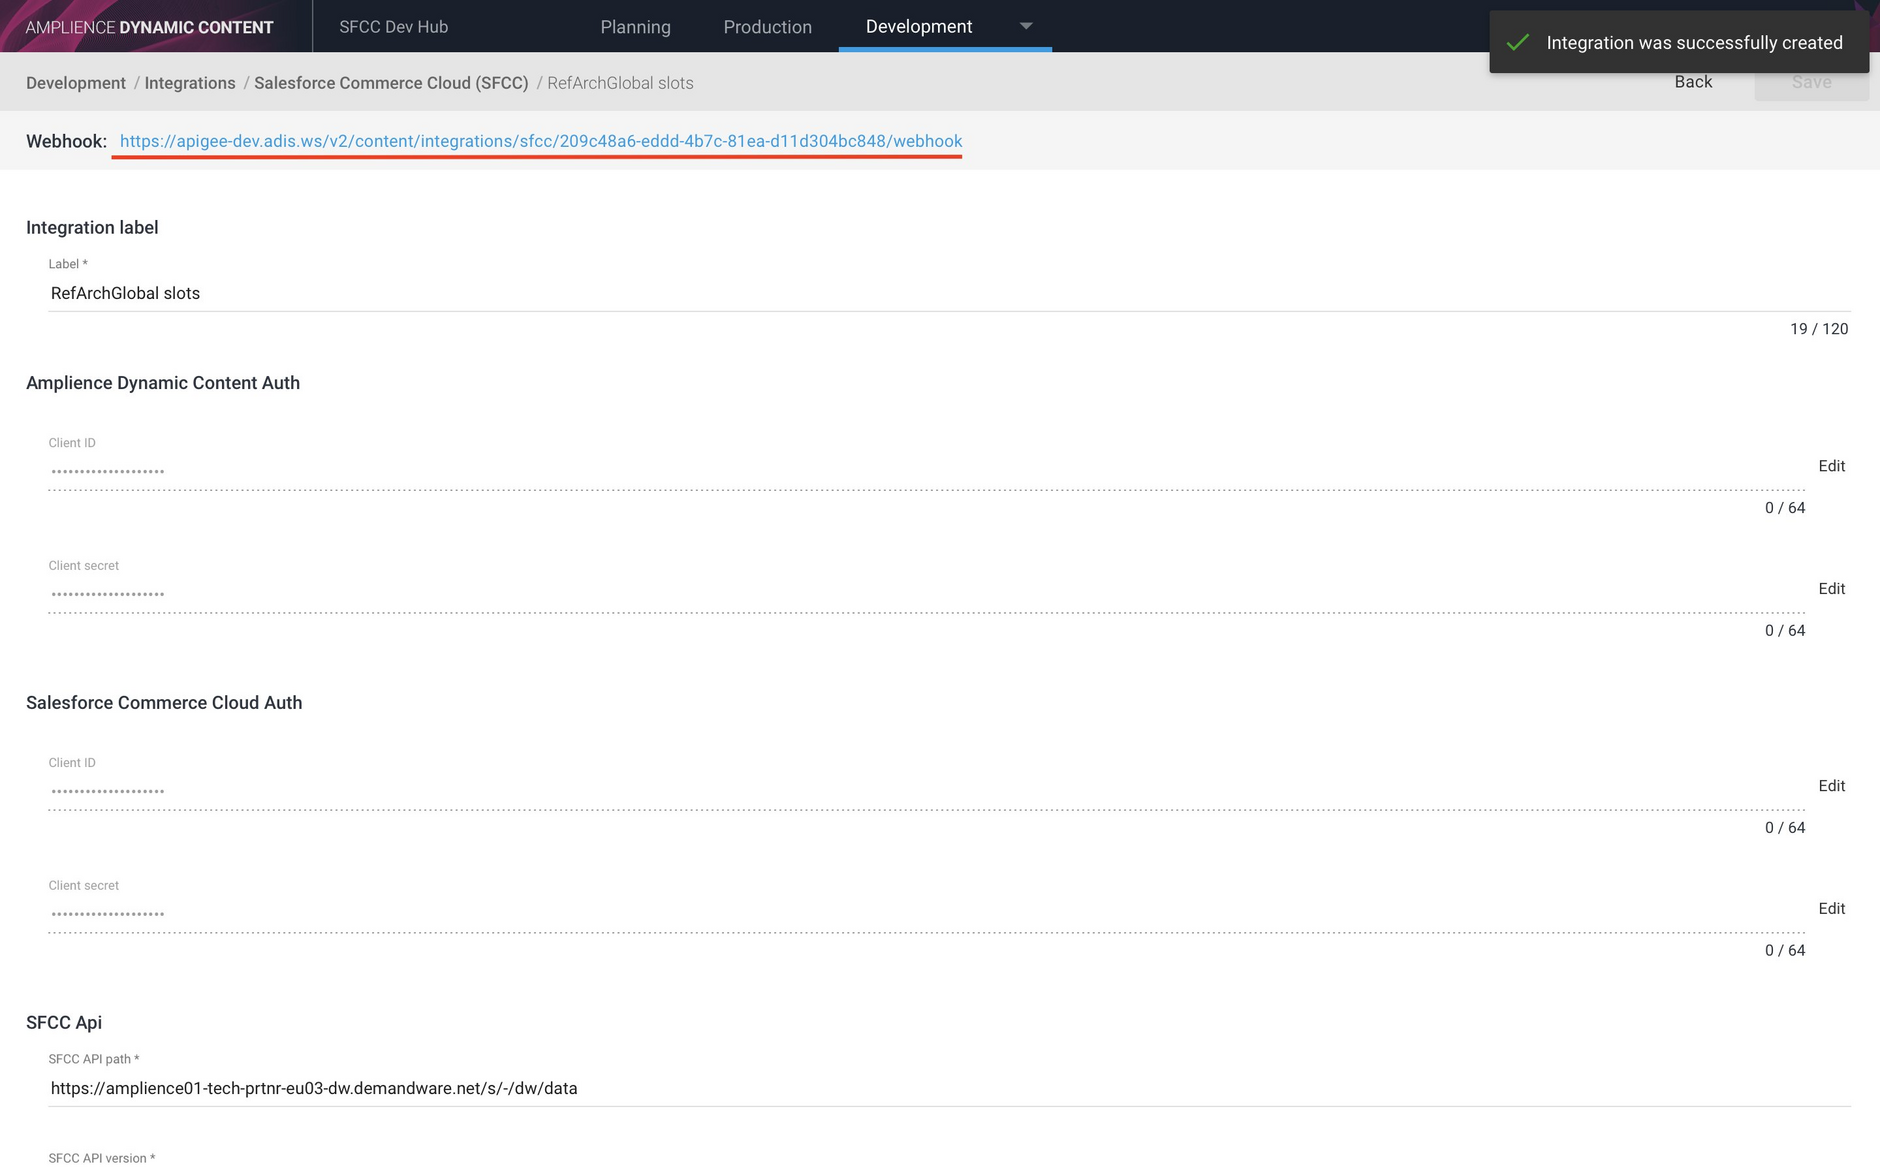 When an integration is created its webhook is shown